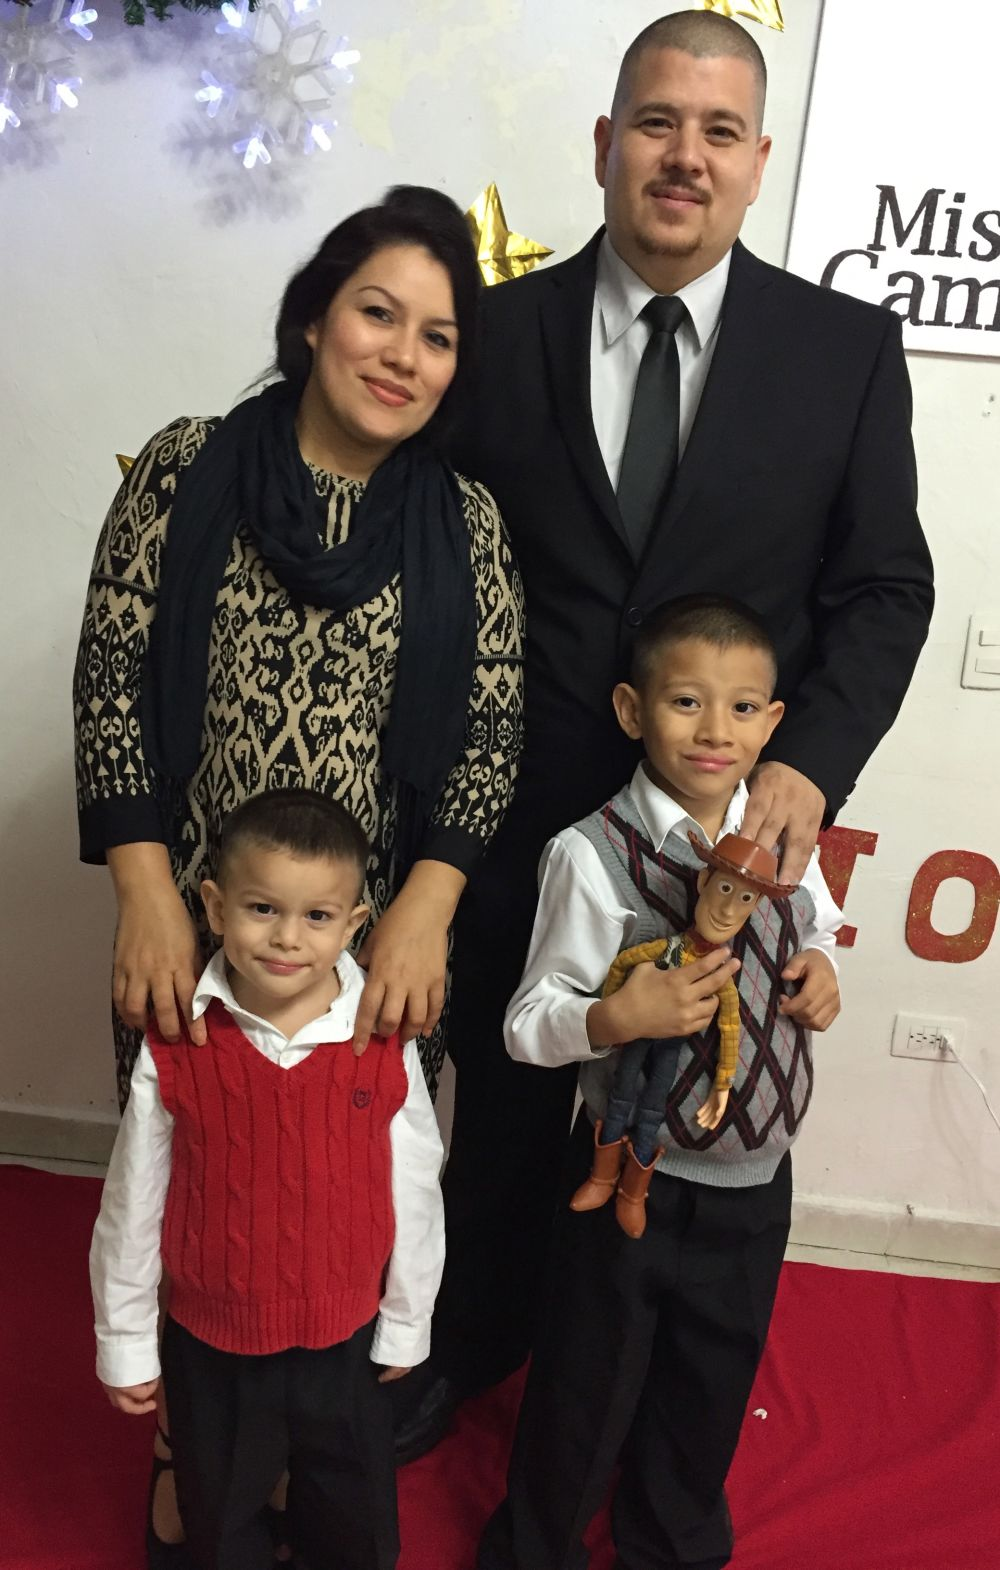 Robert Gonzalez Medina with his wife and two sons at a communion service in December 2016.